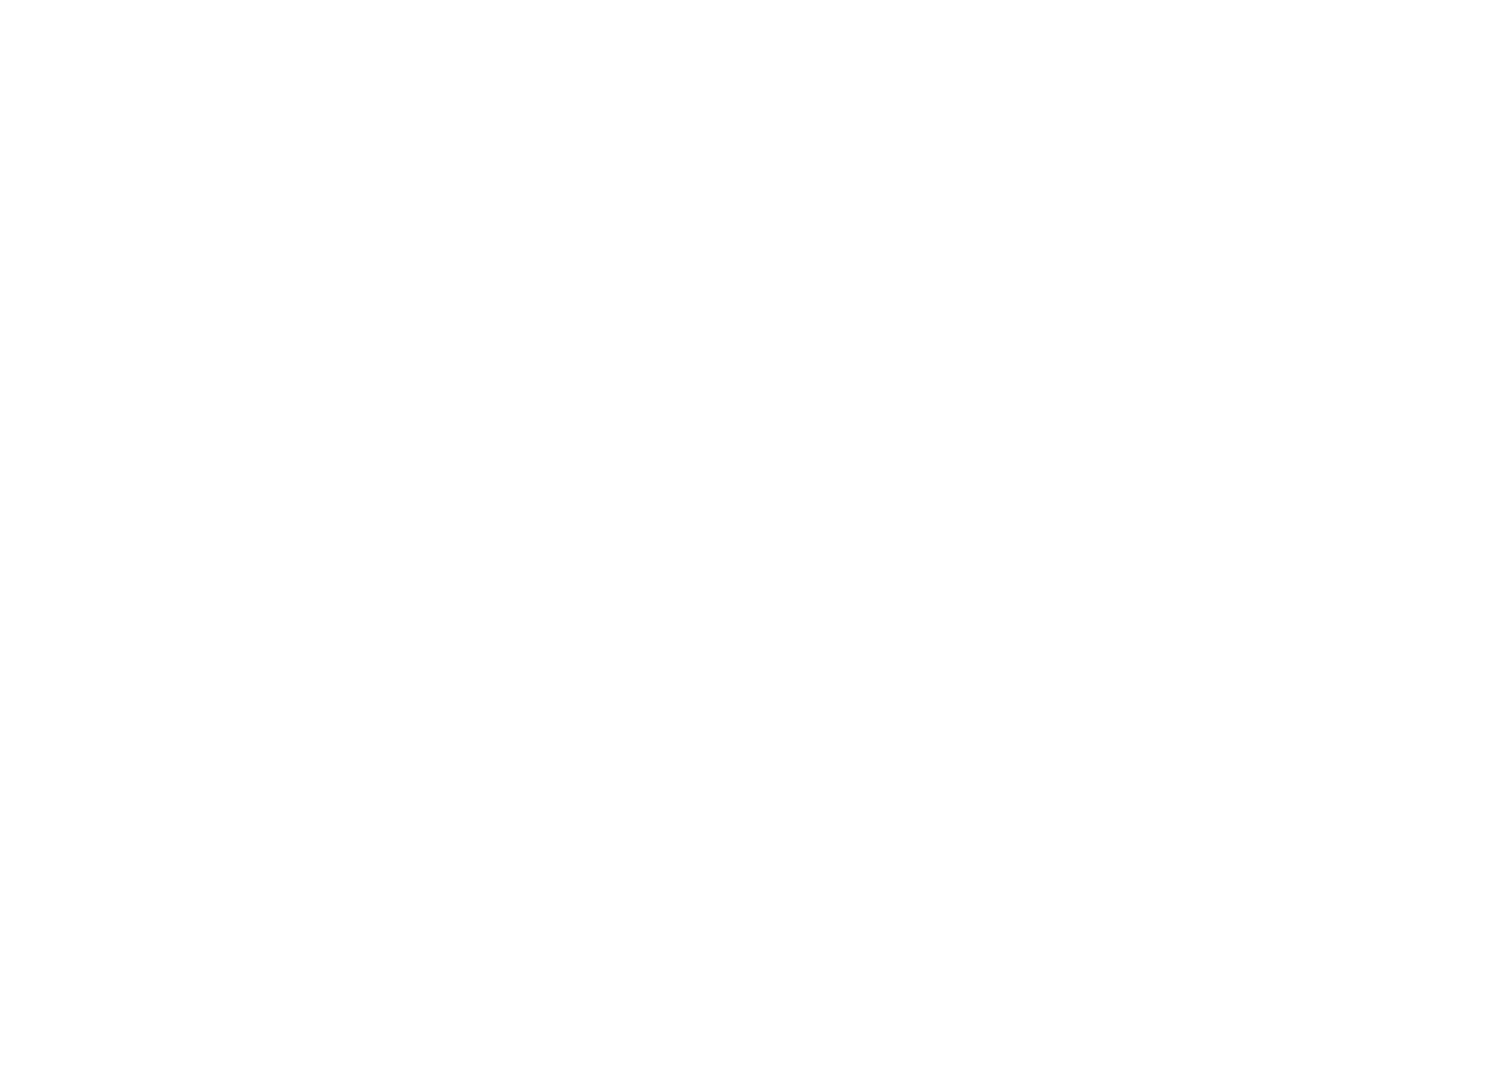 Summit Sports Acupuncture